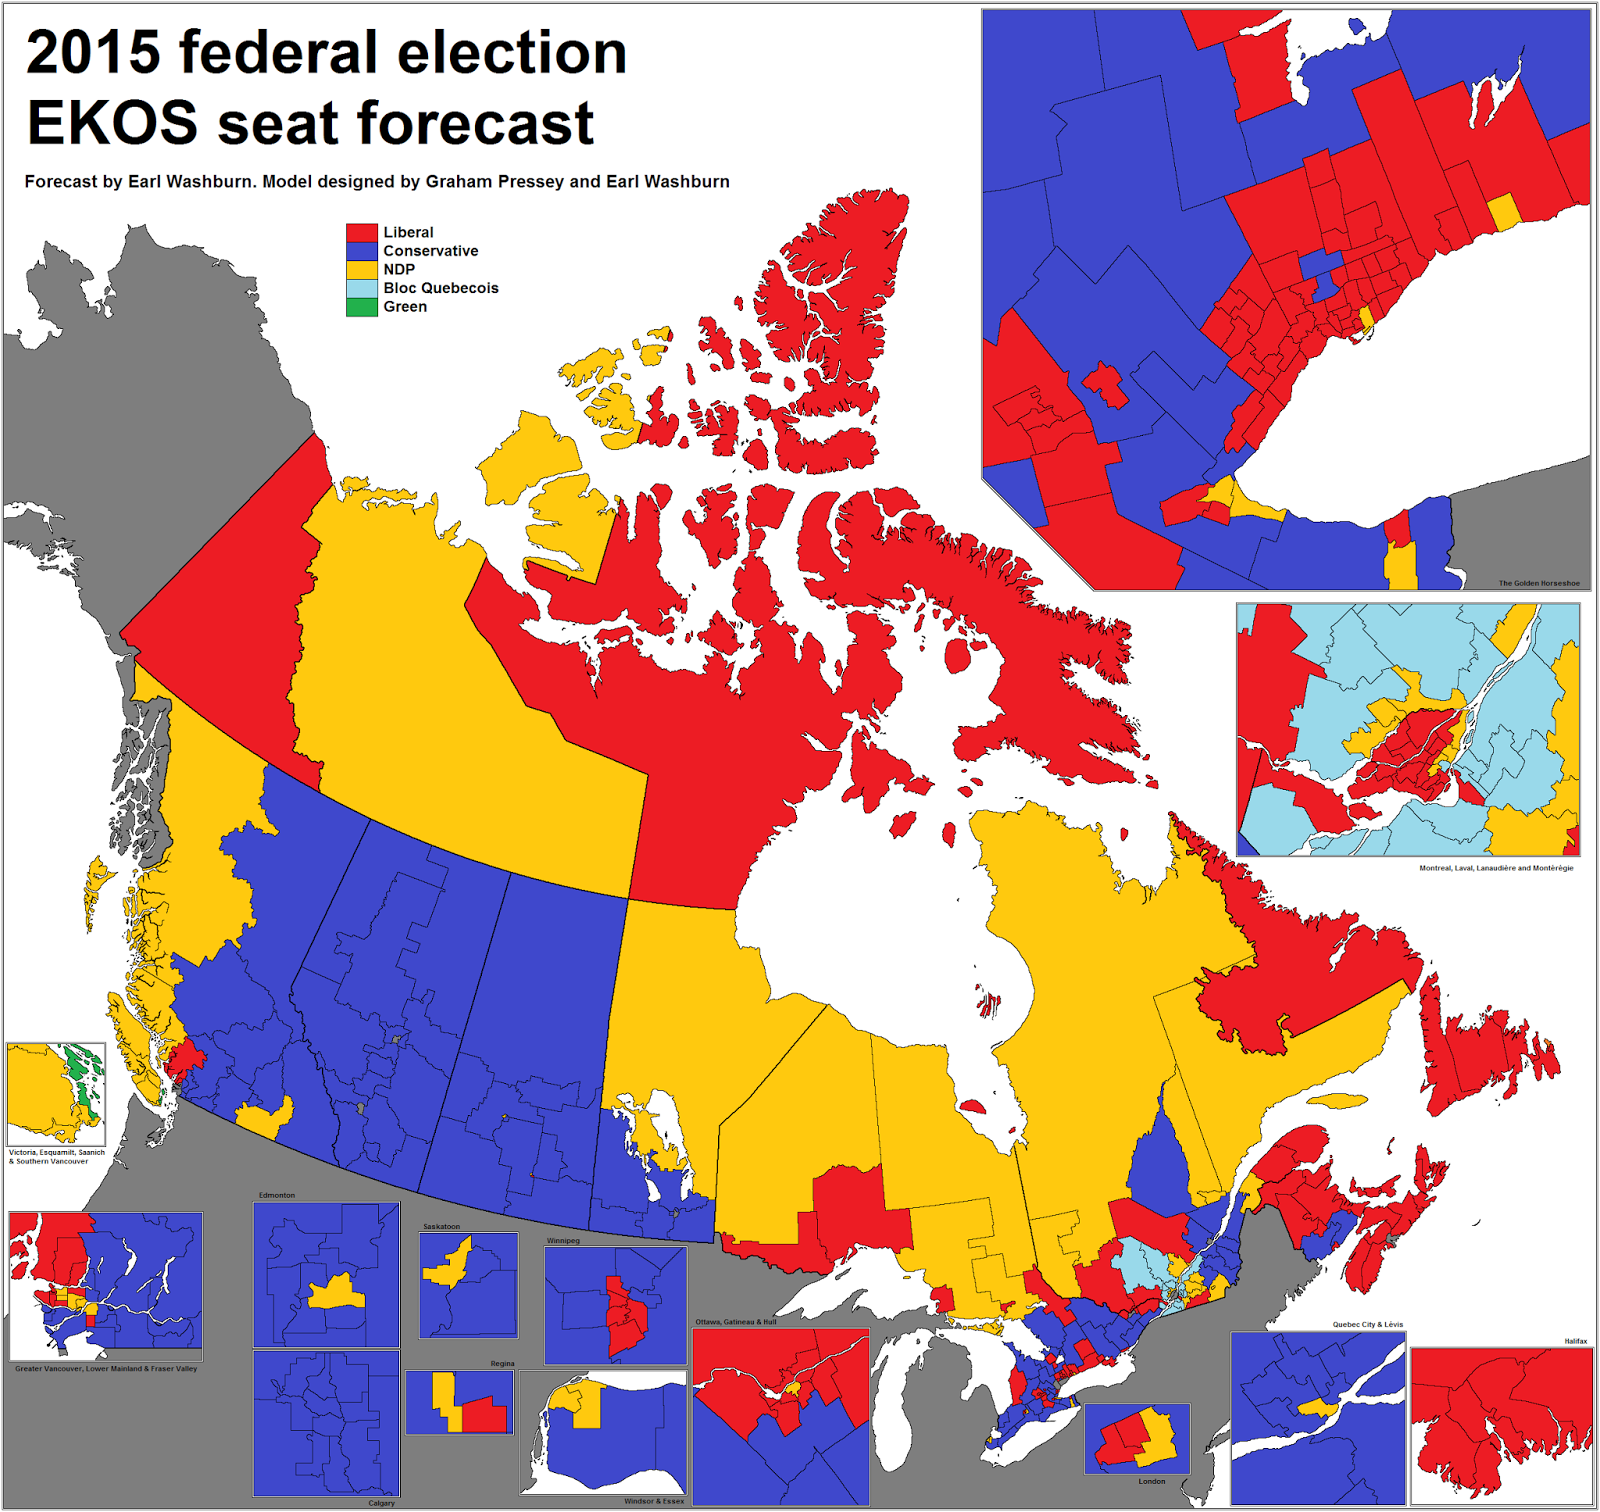 Canada Election Prediction Map Canadian Election Atlas: EKOS seat forecast for the 2015 federal